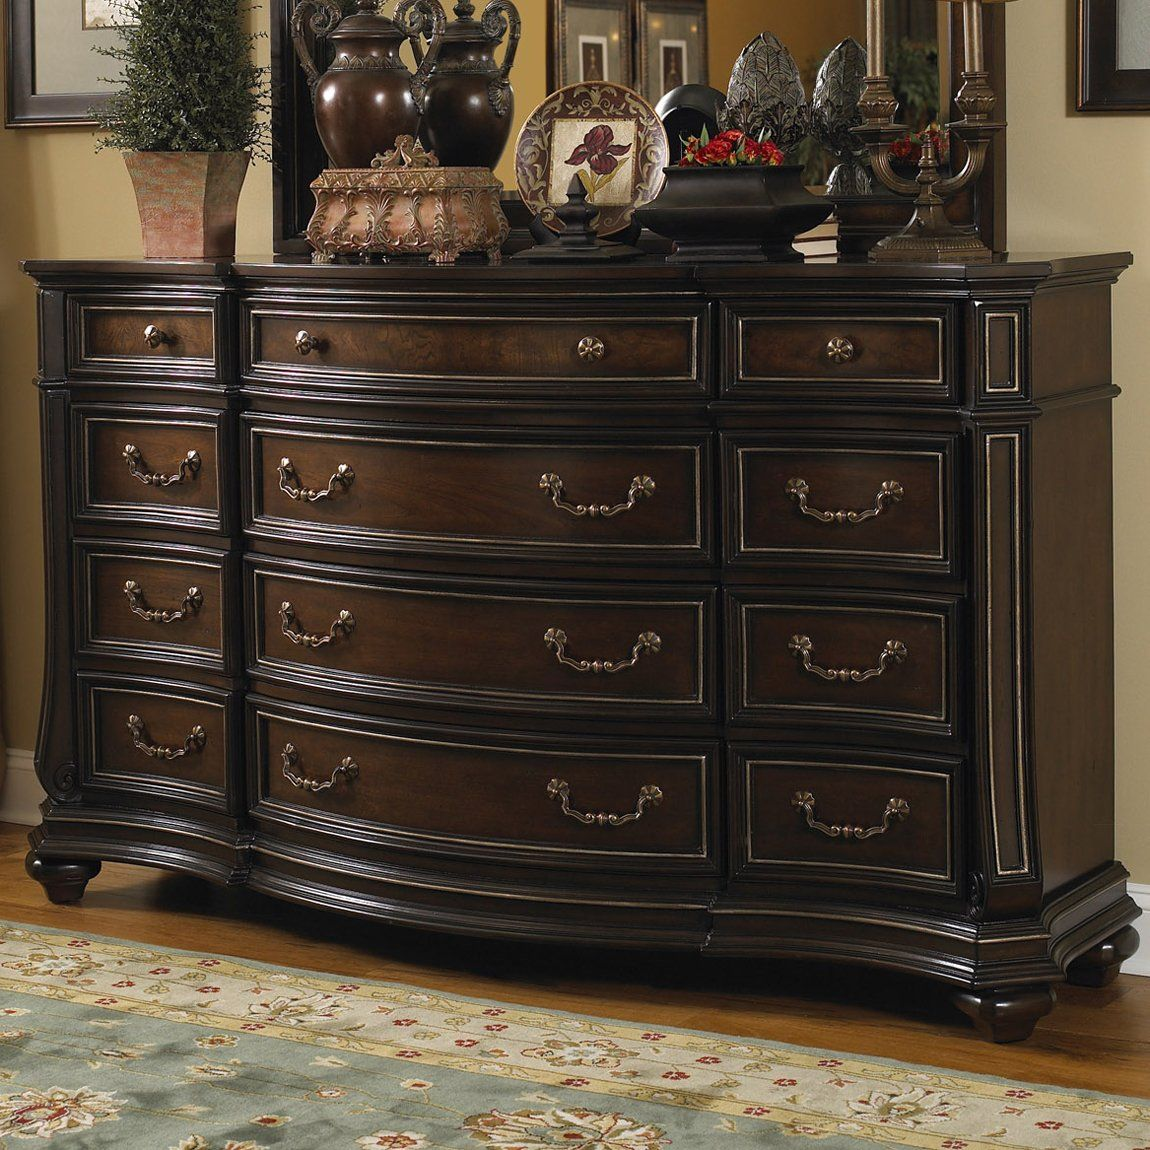 Fairmont Designs Furniture C7008-05 Wellingsley Dresser ...